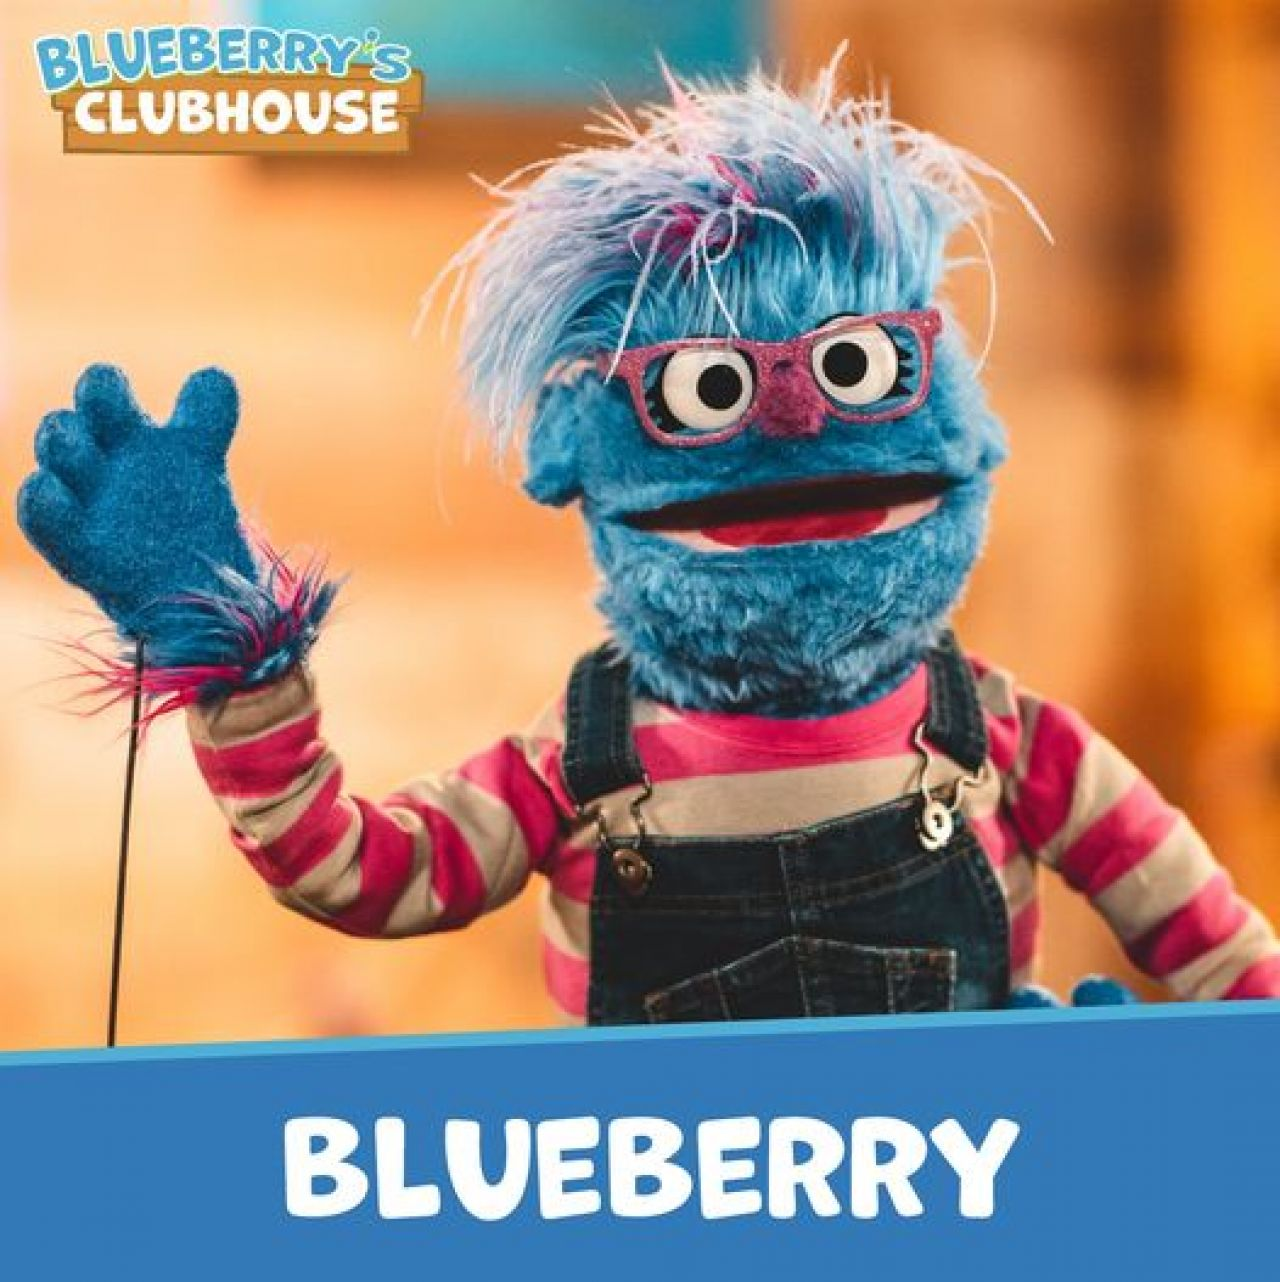 Blueberry, wearing pink glittery glasses and a long-sleeved gray and fuchsia-striped shirt under denim overalls, waves to the camera